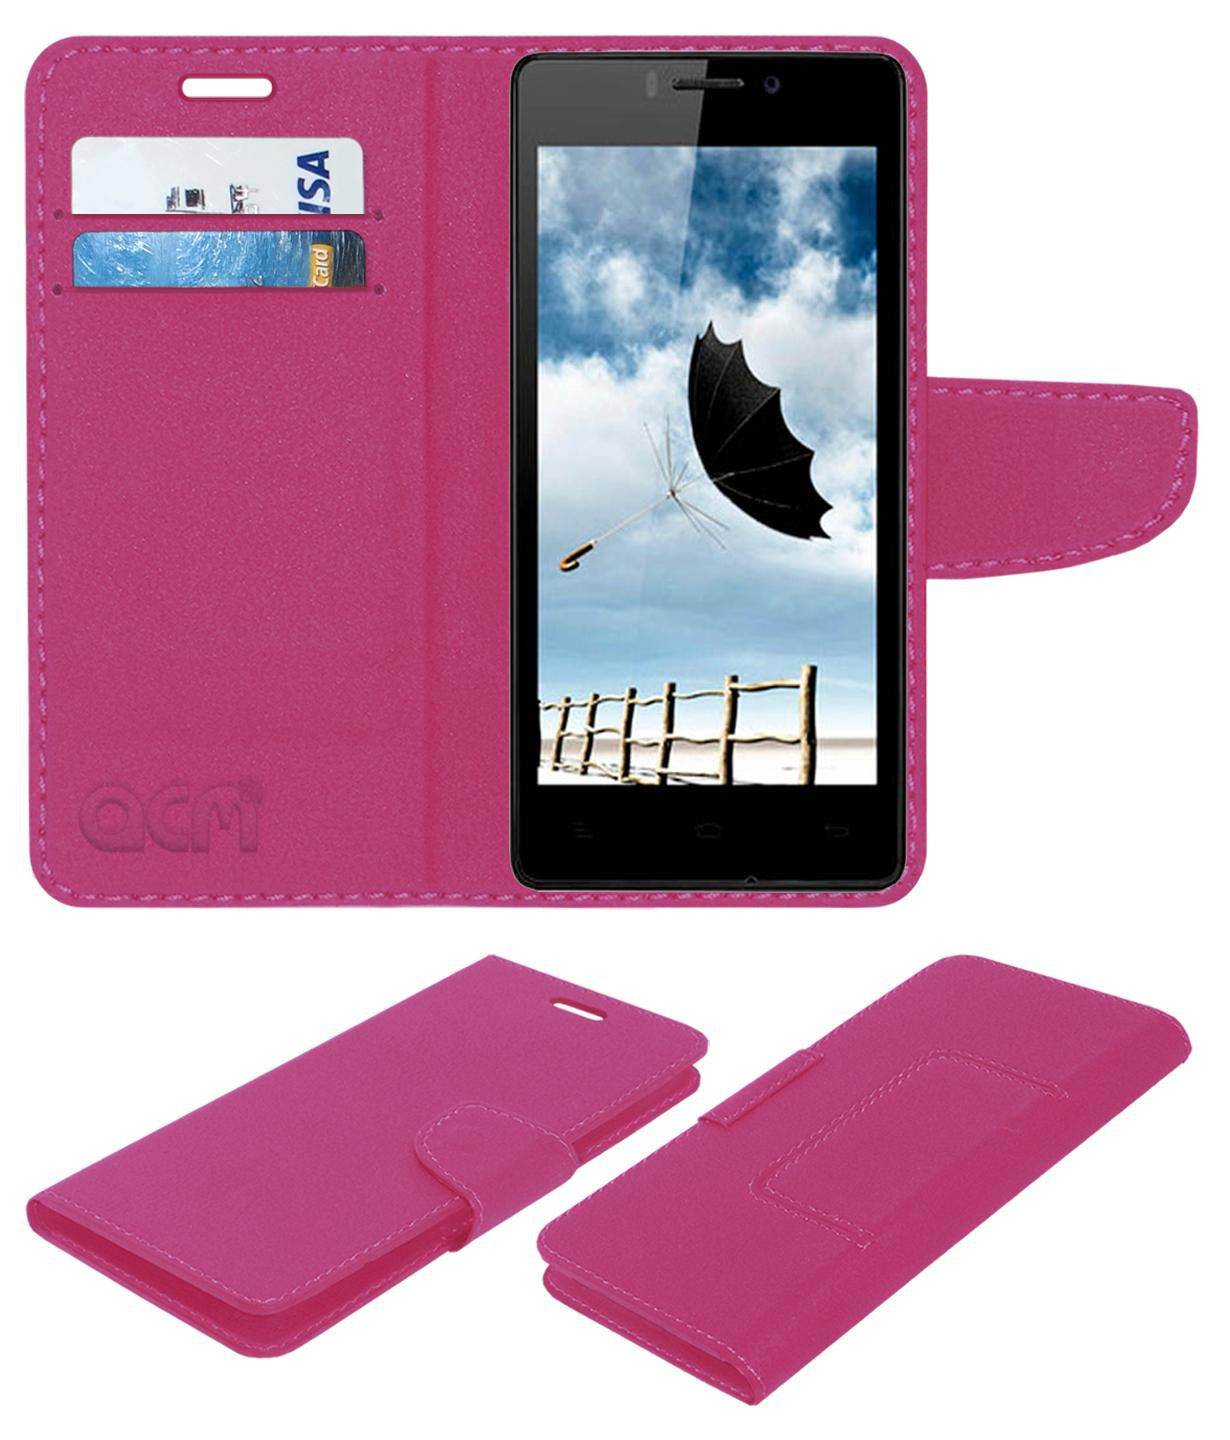 Gionee Elife E5 Flip Cover by ACM - Pink